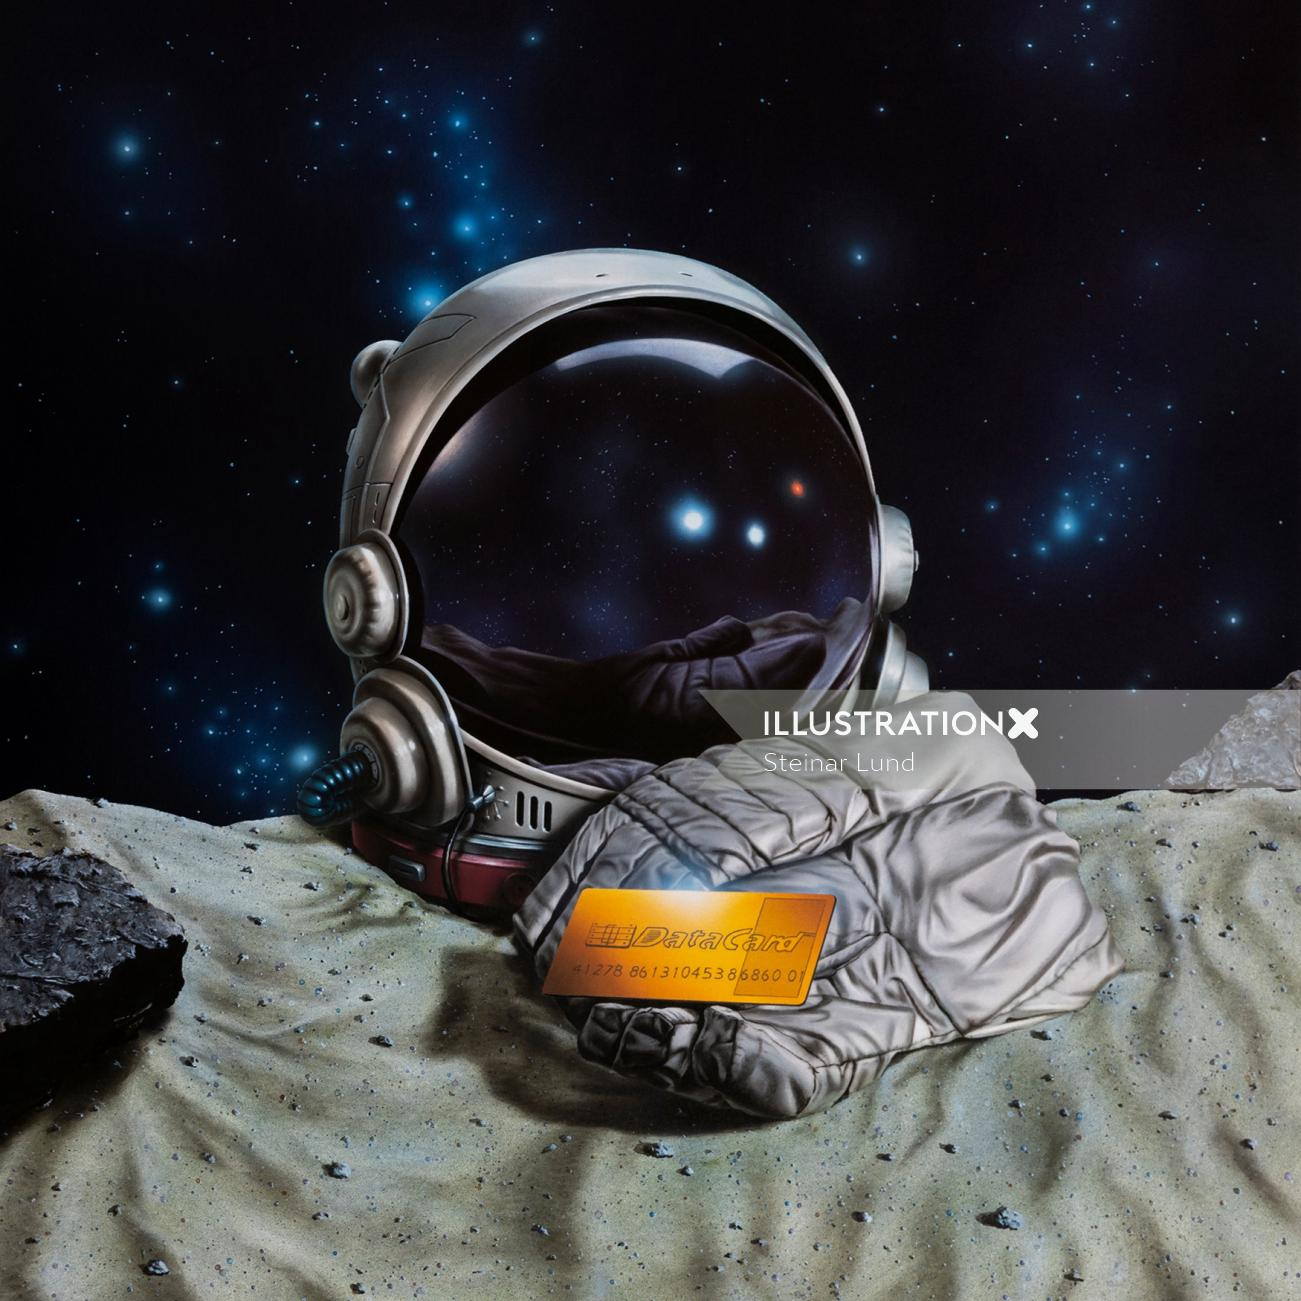 Space helmet and gloves